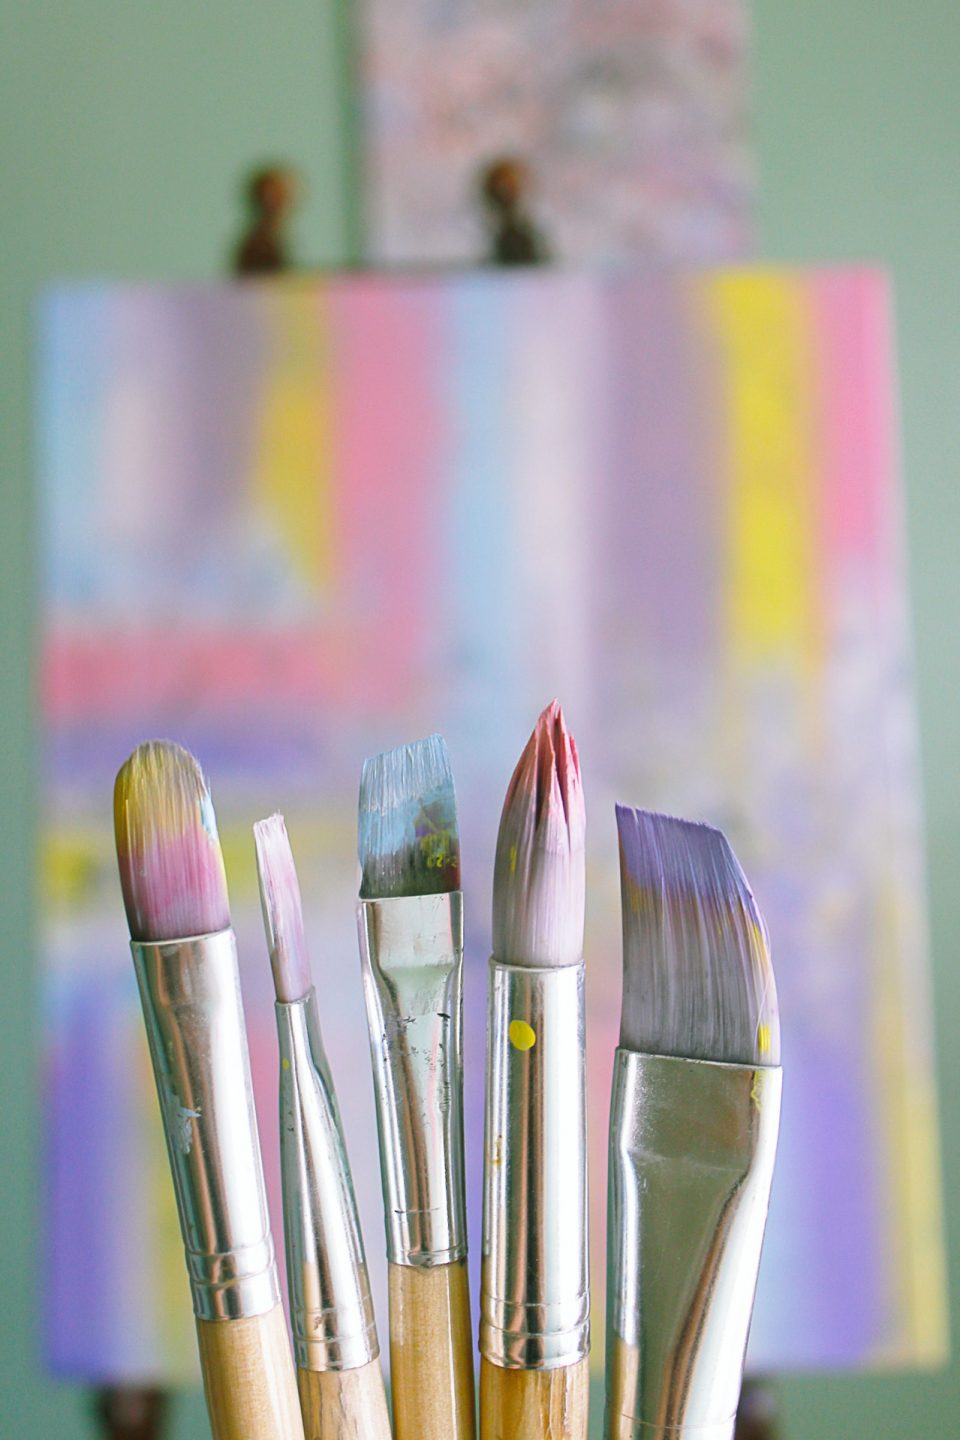 shallow-focus-photo-of-paint-brushes-1646953-2